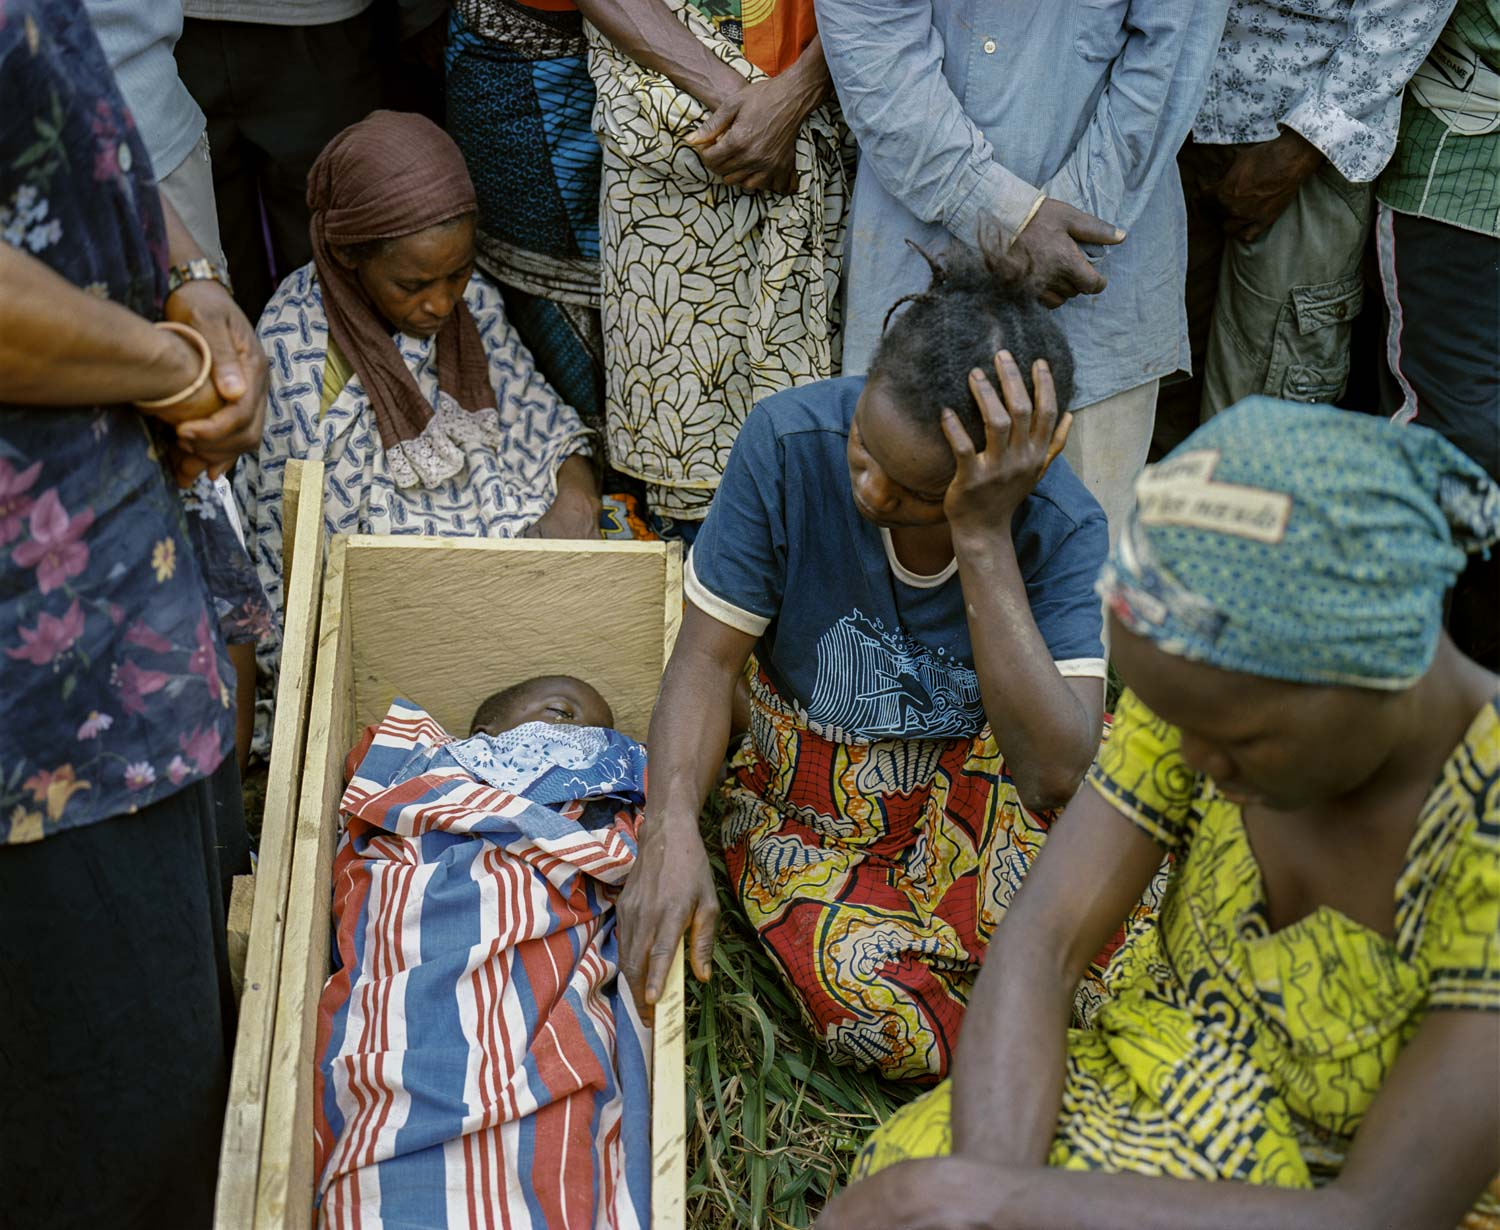 Villagers and family members mourn at the funeral of his murdered 7-year old son, Damas. The belief in sorcery includes a dogma that a rope used to commit suicide has inherent powers; the rope can be sold in markets in Burundi and Tanzania for thousands of dollars to believers that claim it will give them black magic powers. Damas' murder was staged to appears a suicide by hanging.Jan. 18, 2014. Lulingu, South Kivu, Democratic Republic of the Congo.